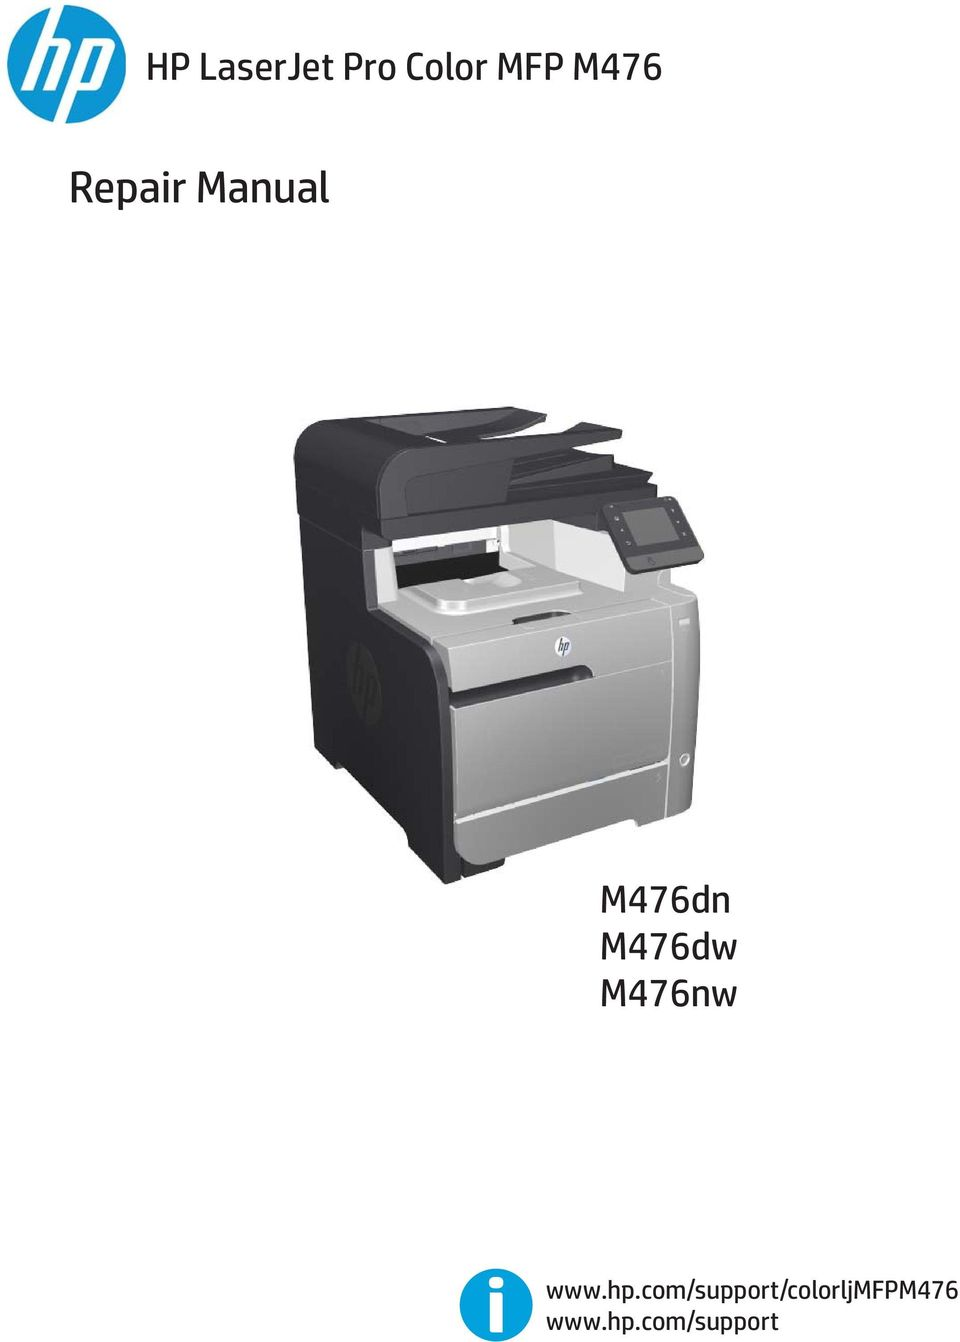 ... Color MFP M476 Repair Manual M476dn M476dw M476nw. M476dw M476nw www.hp.